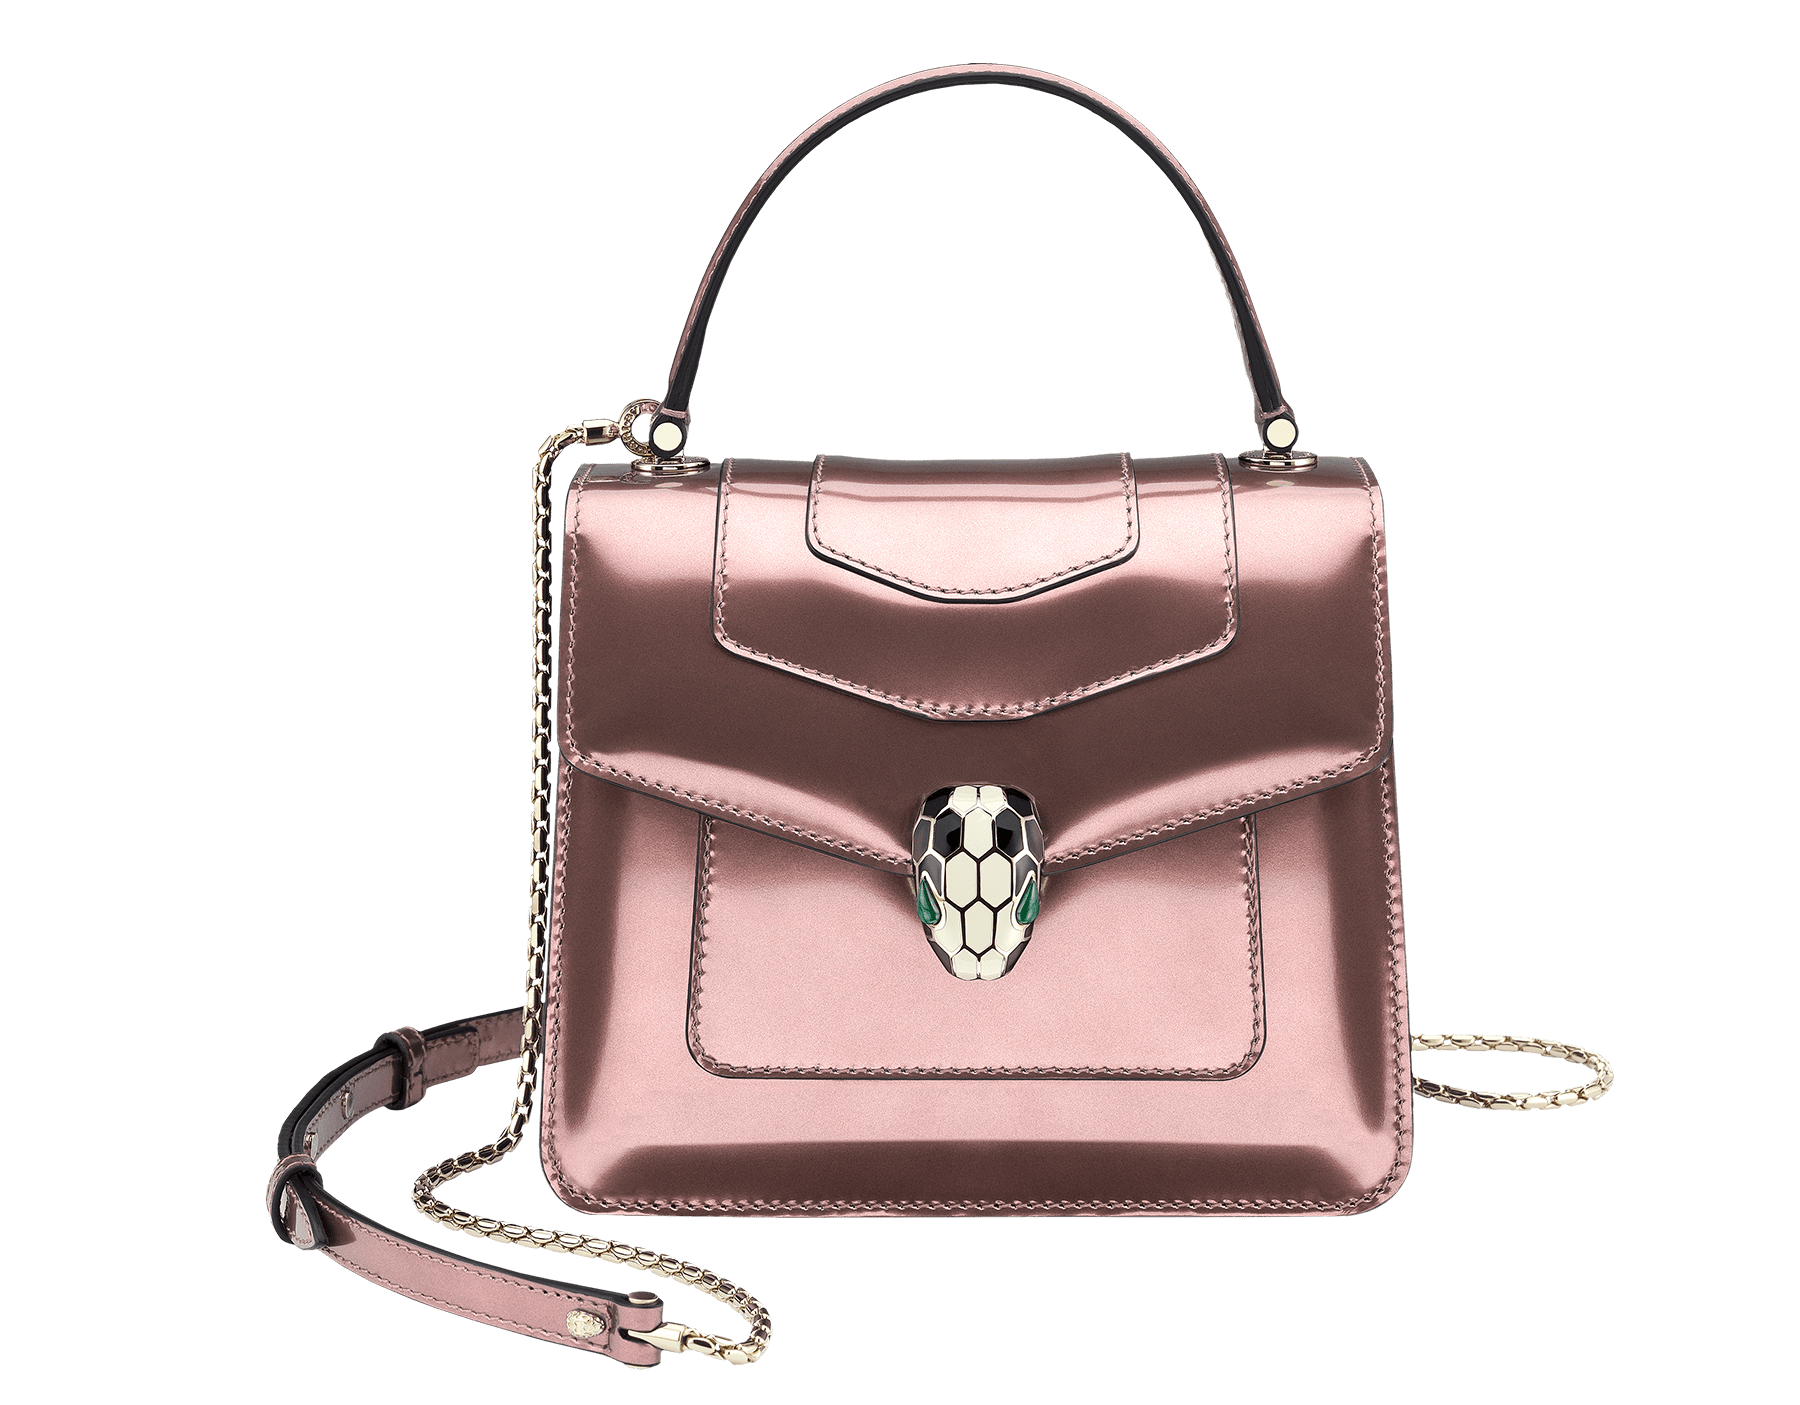 Flap cover bag Serpenti Forever in rose quartz brushed metallic calf leather. Brass light gold plated hardware and snake head closure in black and white enamel, with eyes in green malachite. 284802 image 3